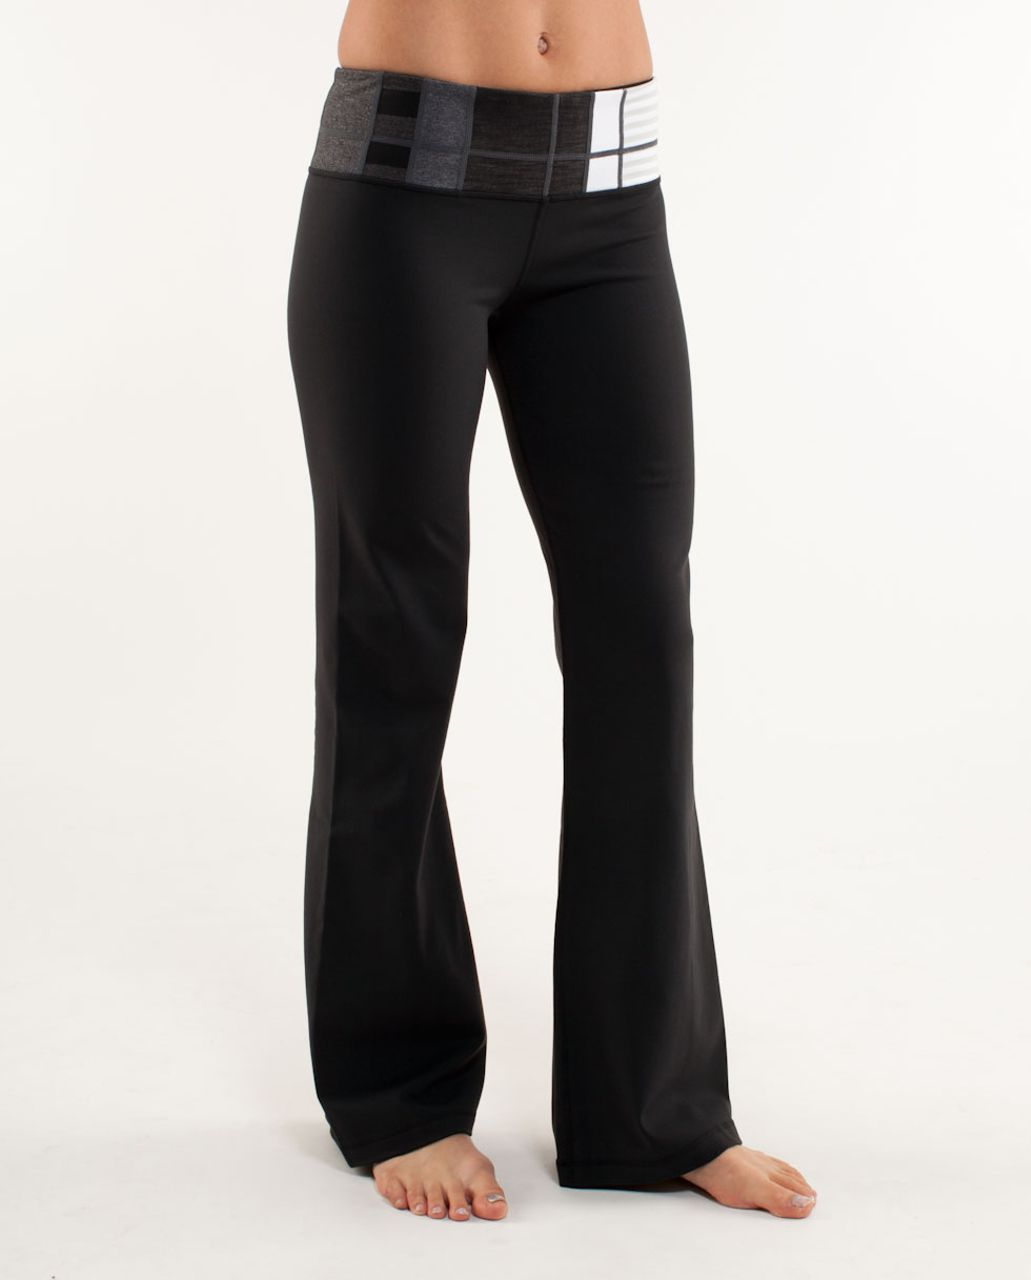 Lululemon Groove Pant (Regular) - Black /  Quilting Winter 20